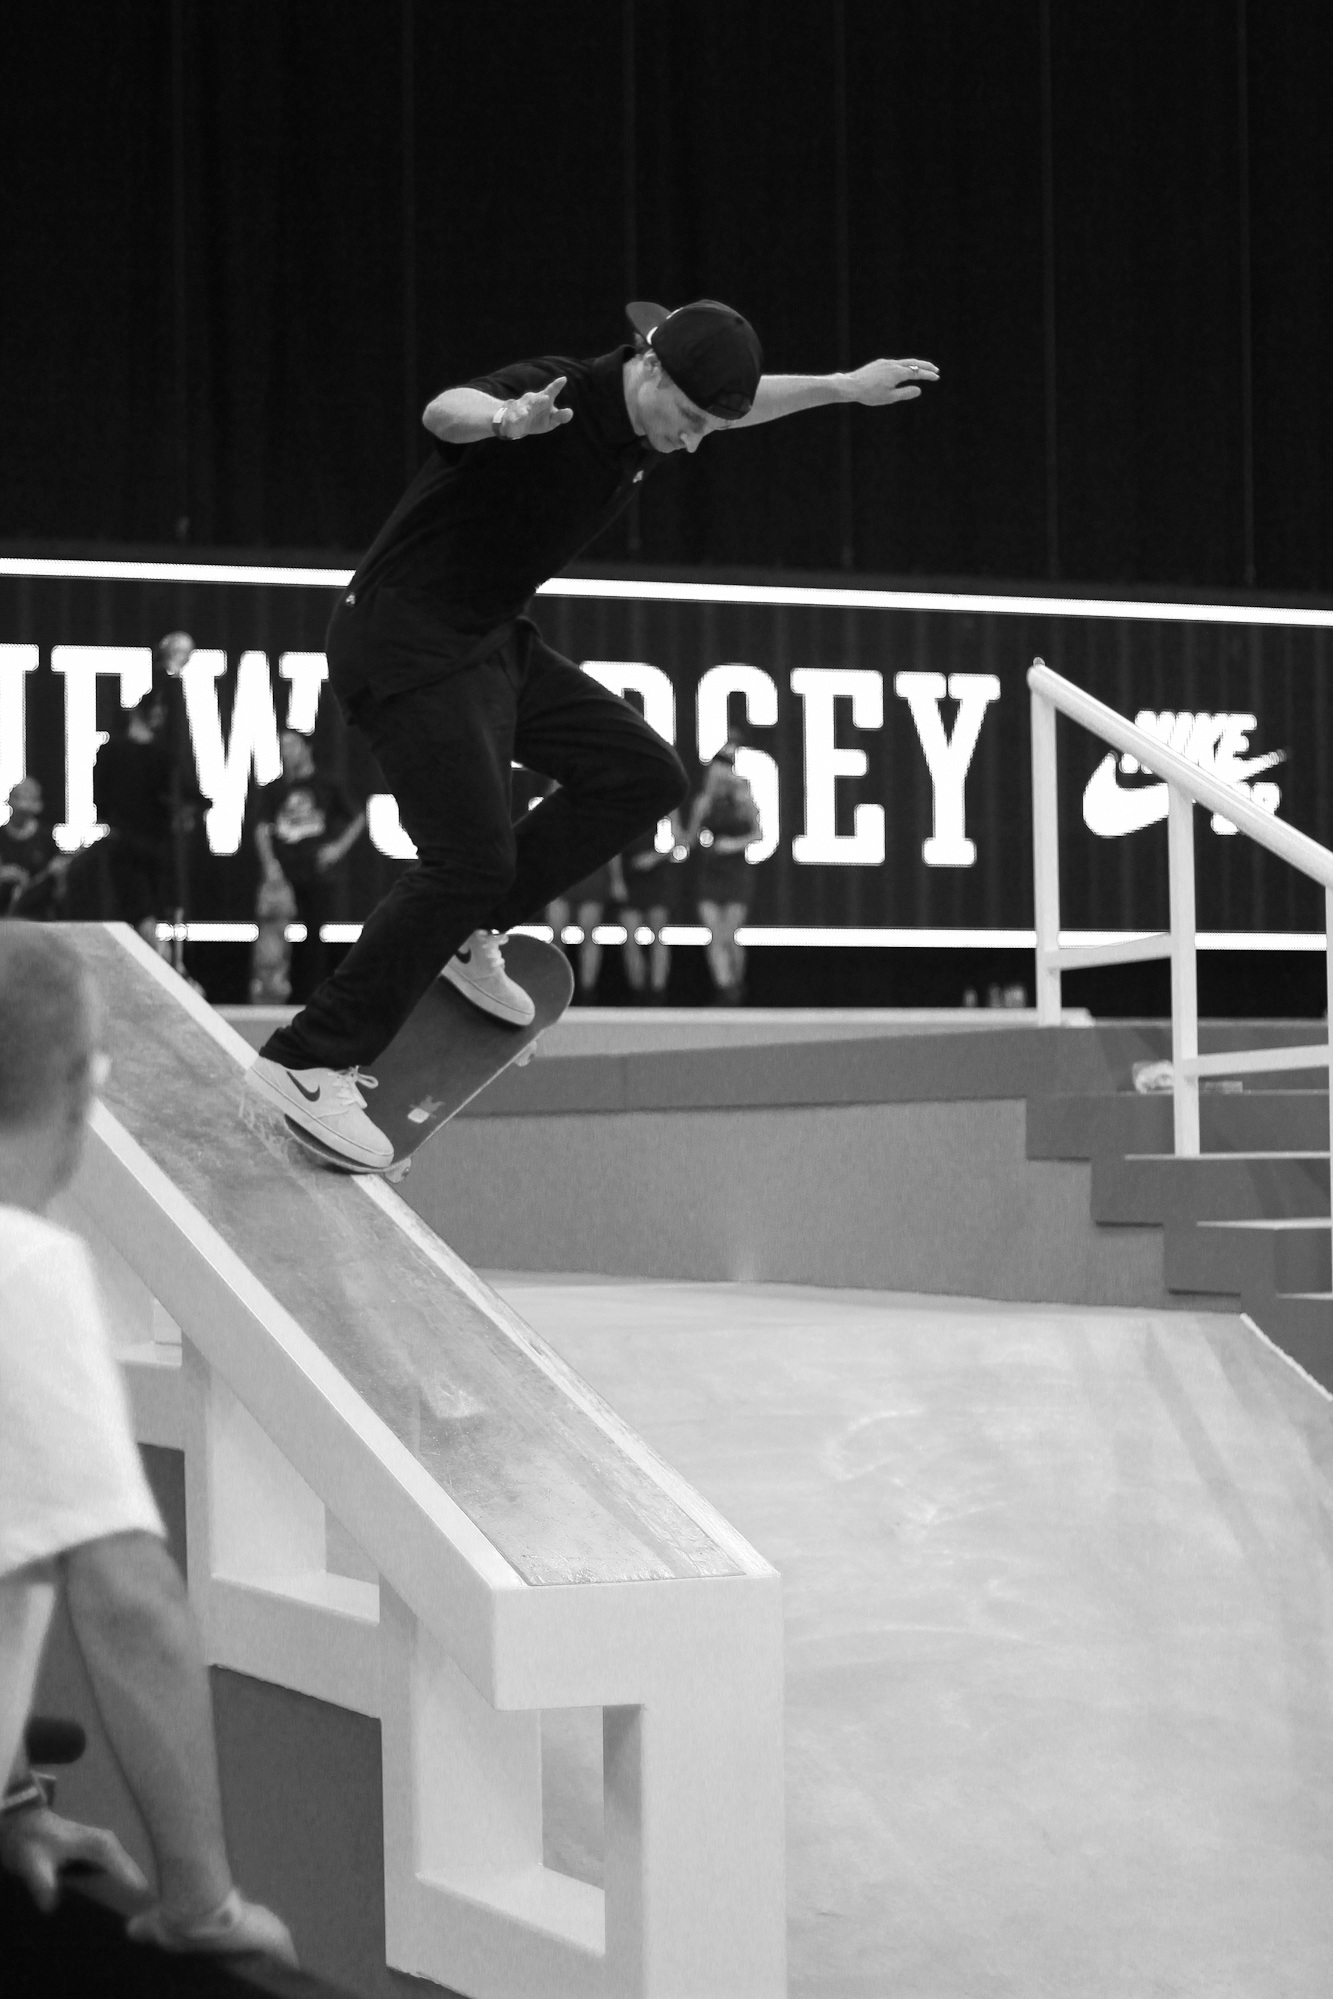 Studio_Bloq-Nike_SB-Street_League-2.jpg